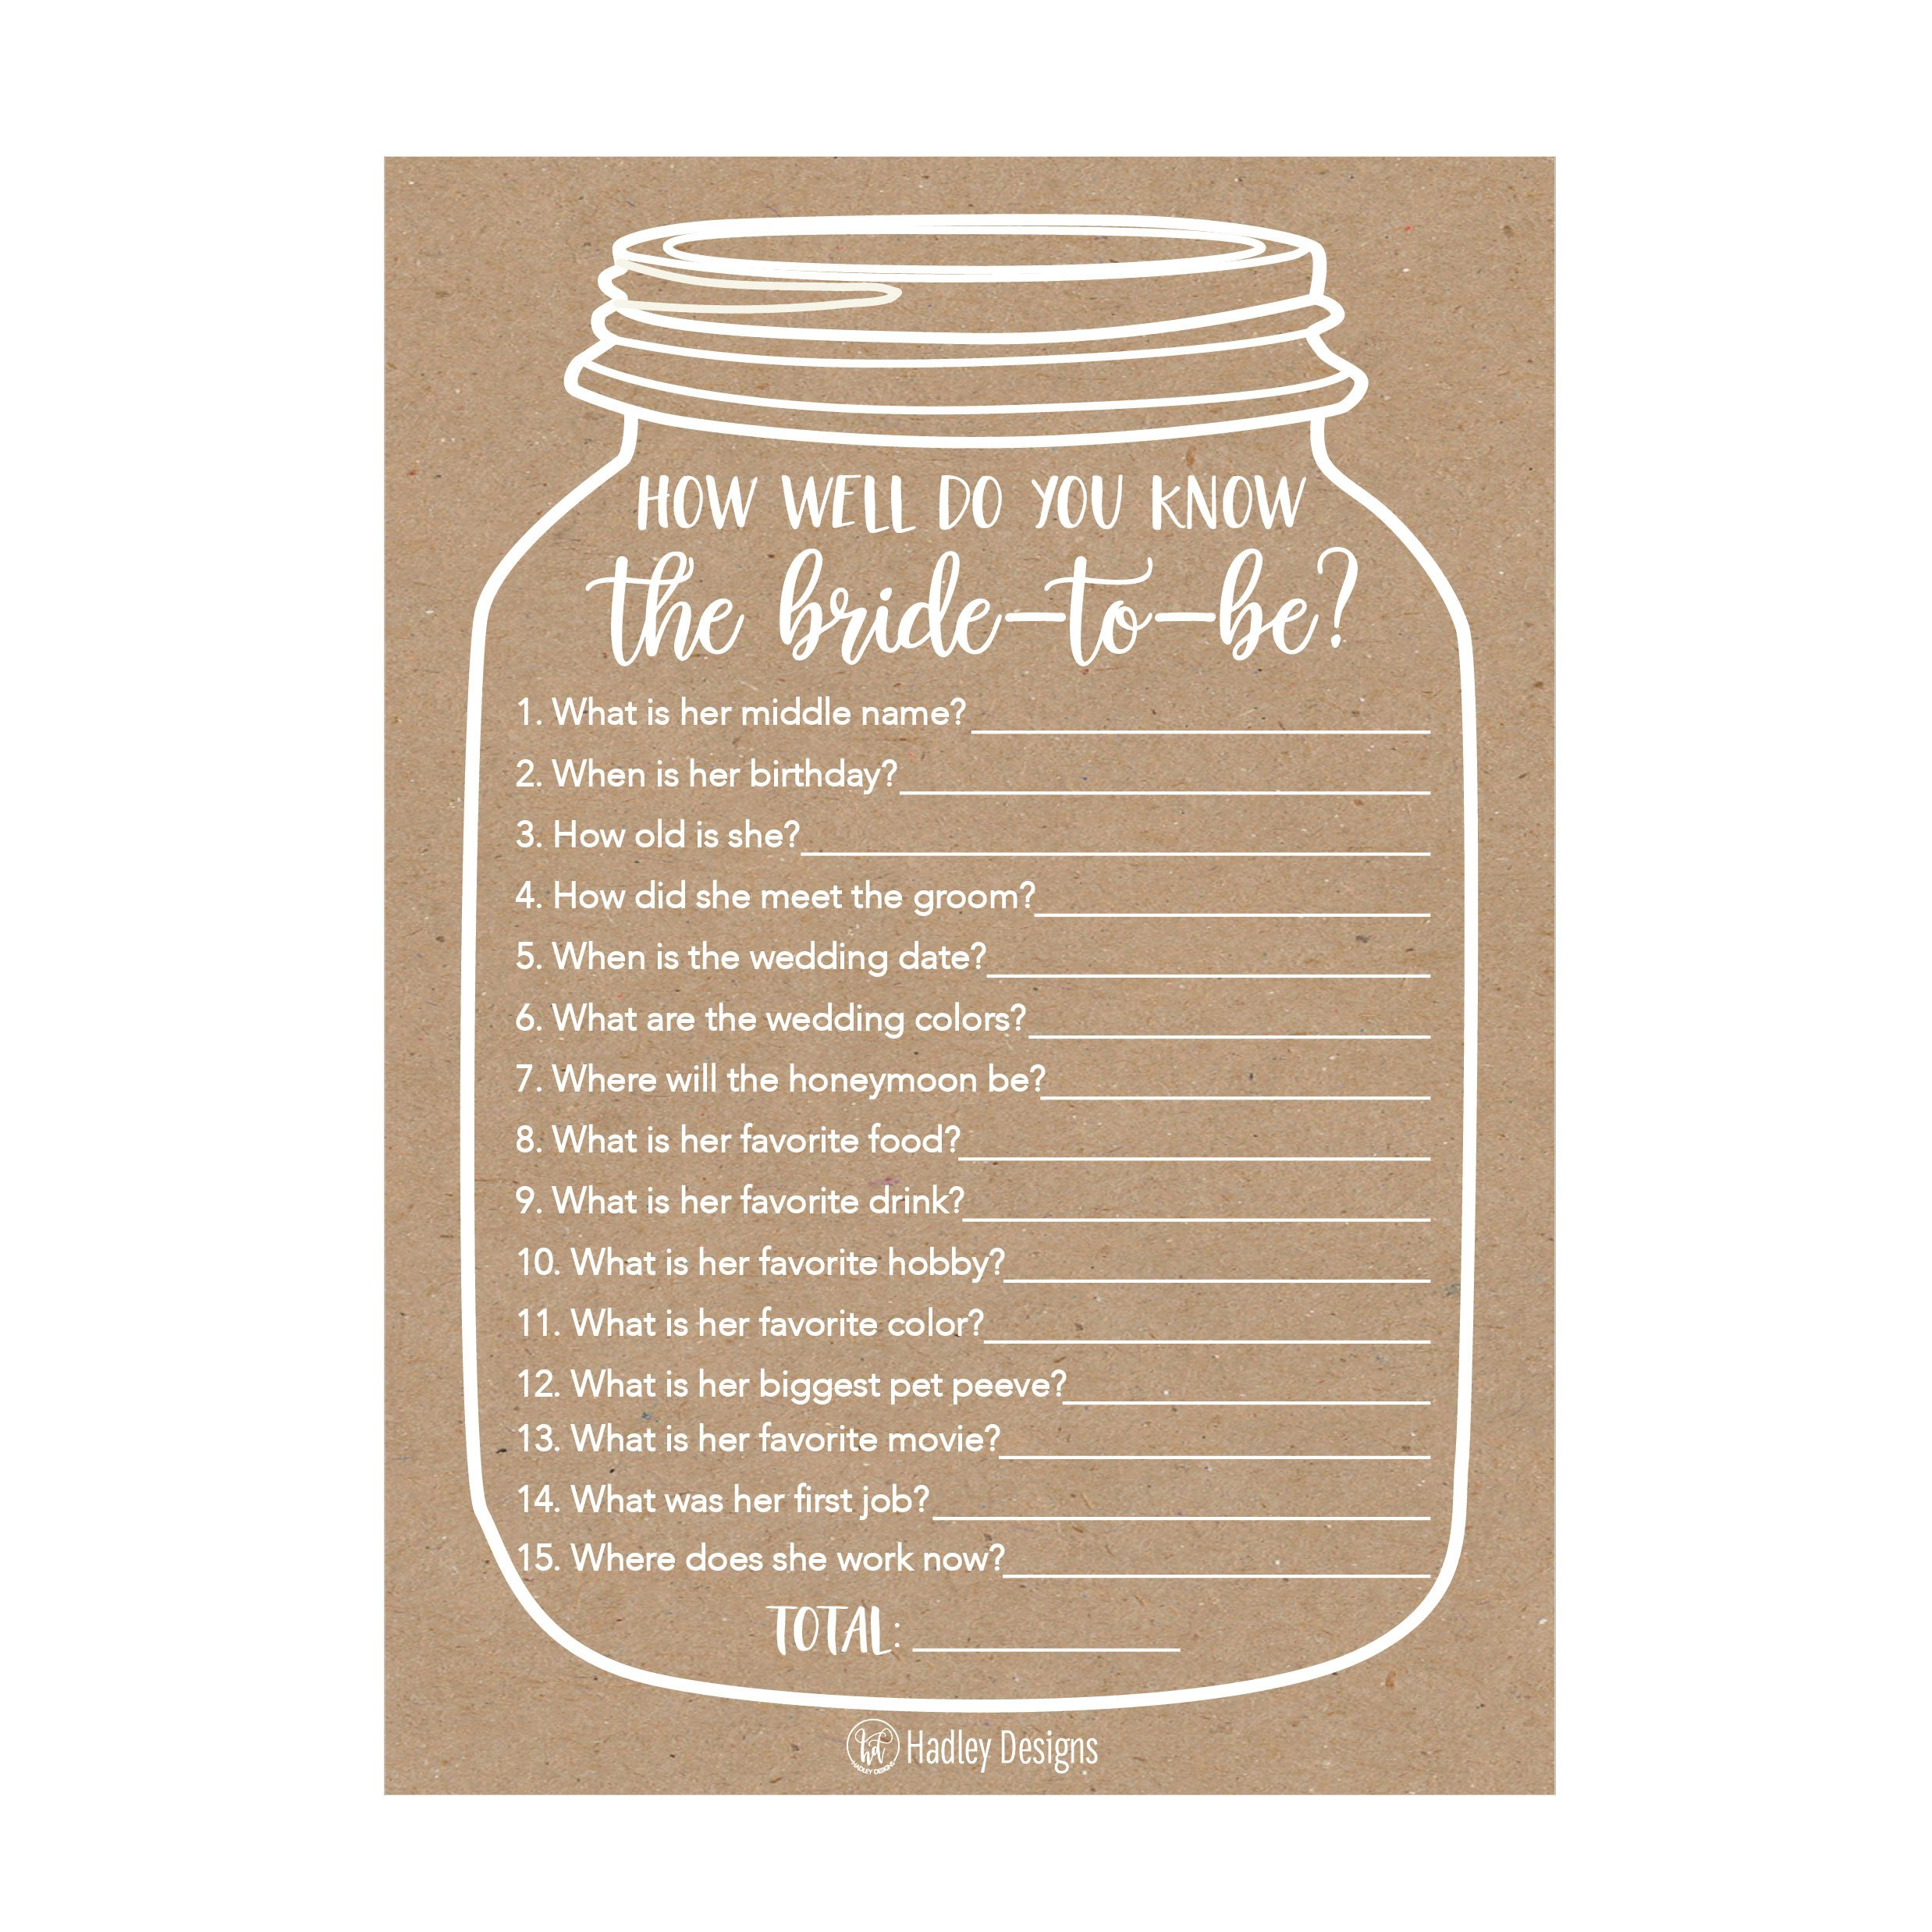 25 Cute Rustic How Well Do You Know The Bride Bridal Wedding Shower or Bachelorette Party Game, Who Knows The Best Does The Groom? Couples Guessing Question Set of Cards Pack Unique Printed Engagement